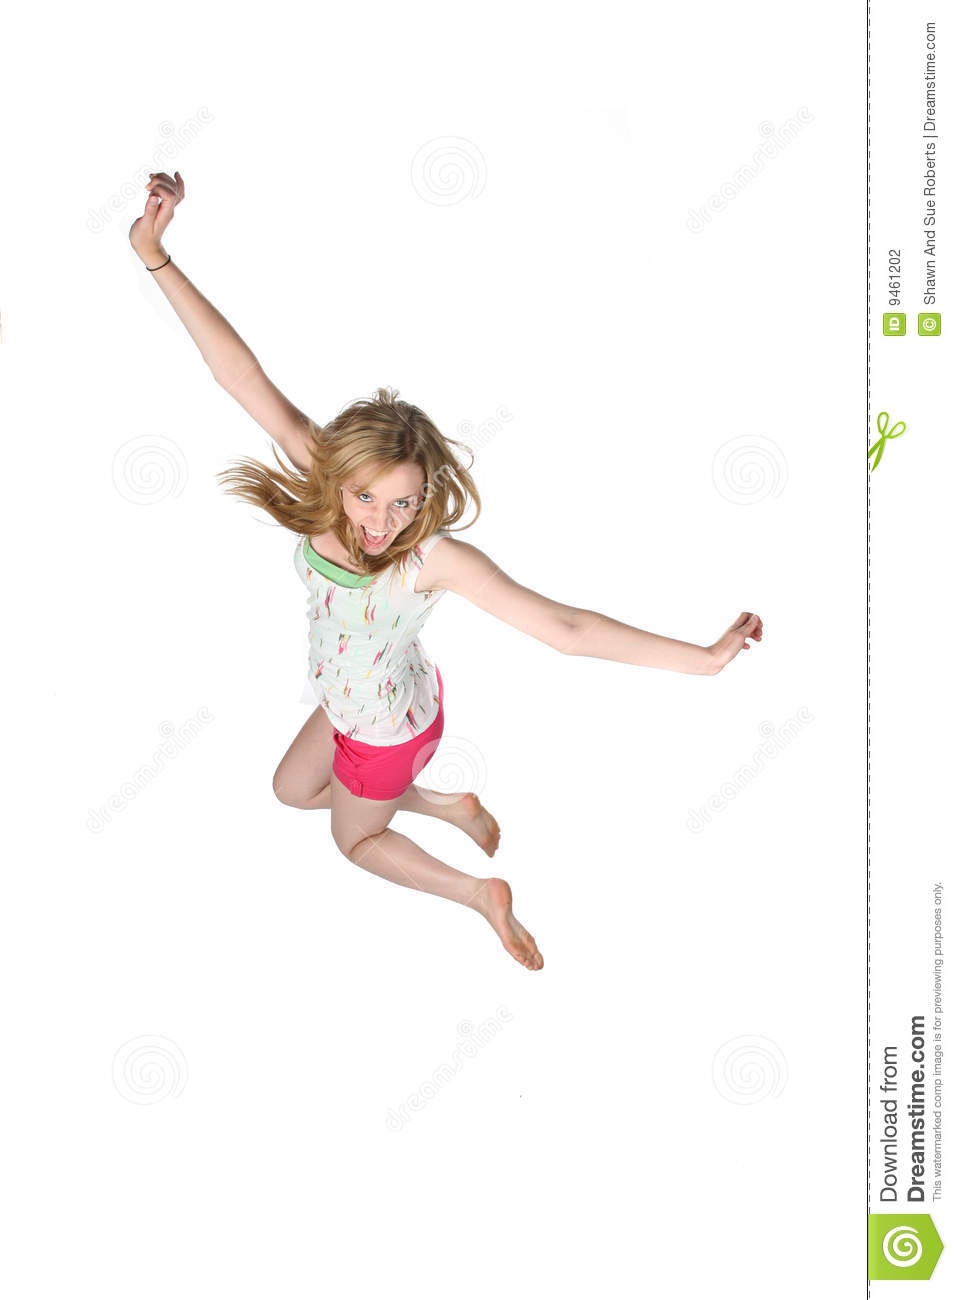 Attractivey oung woman jumping for joy